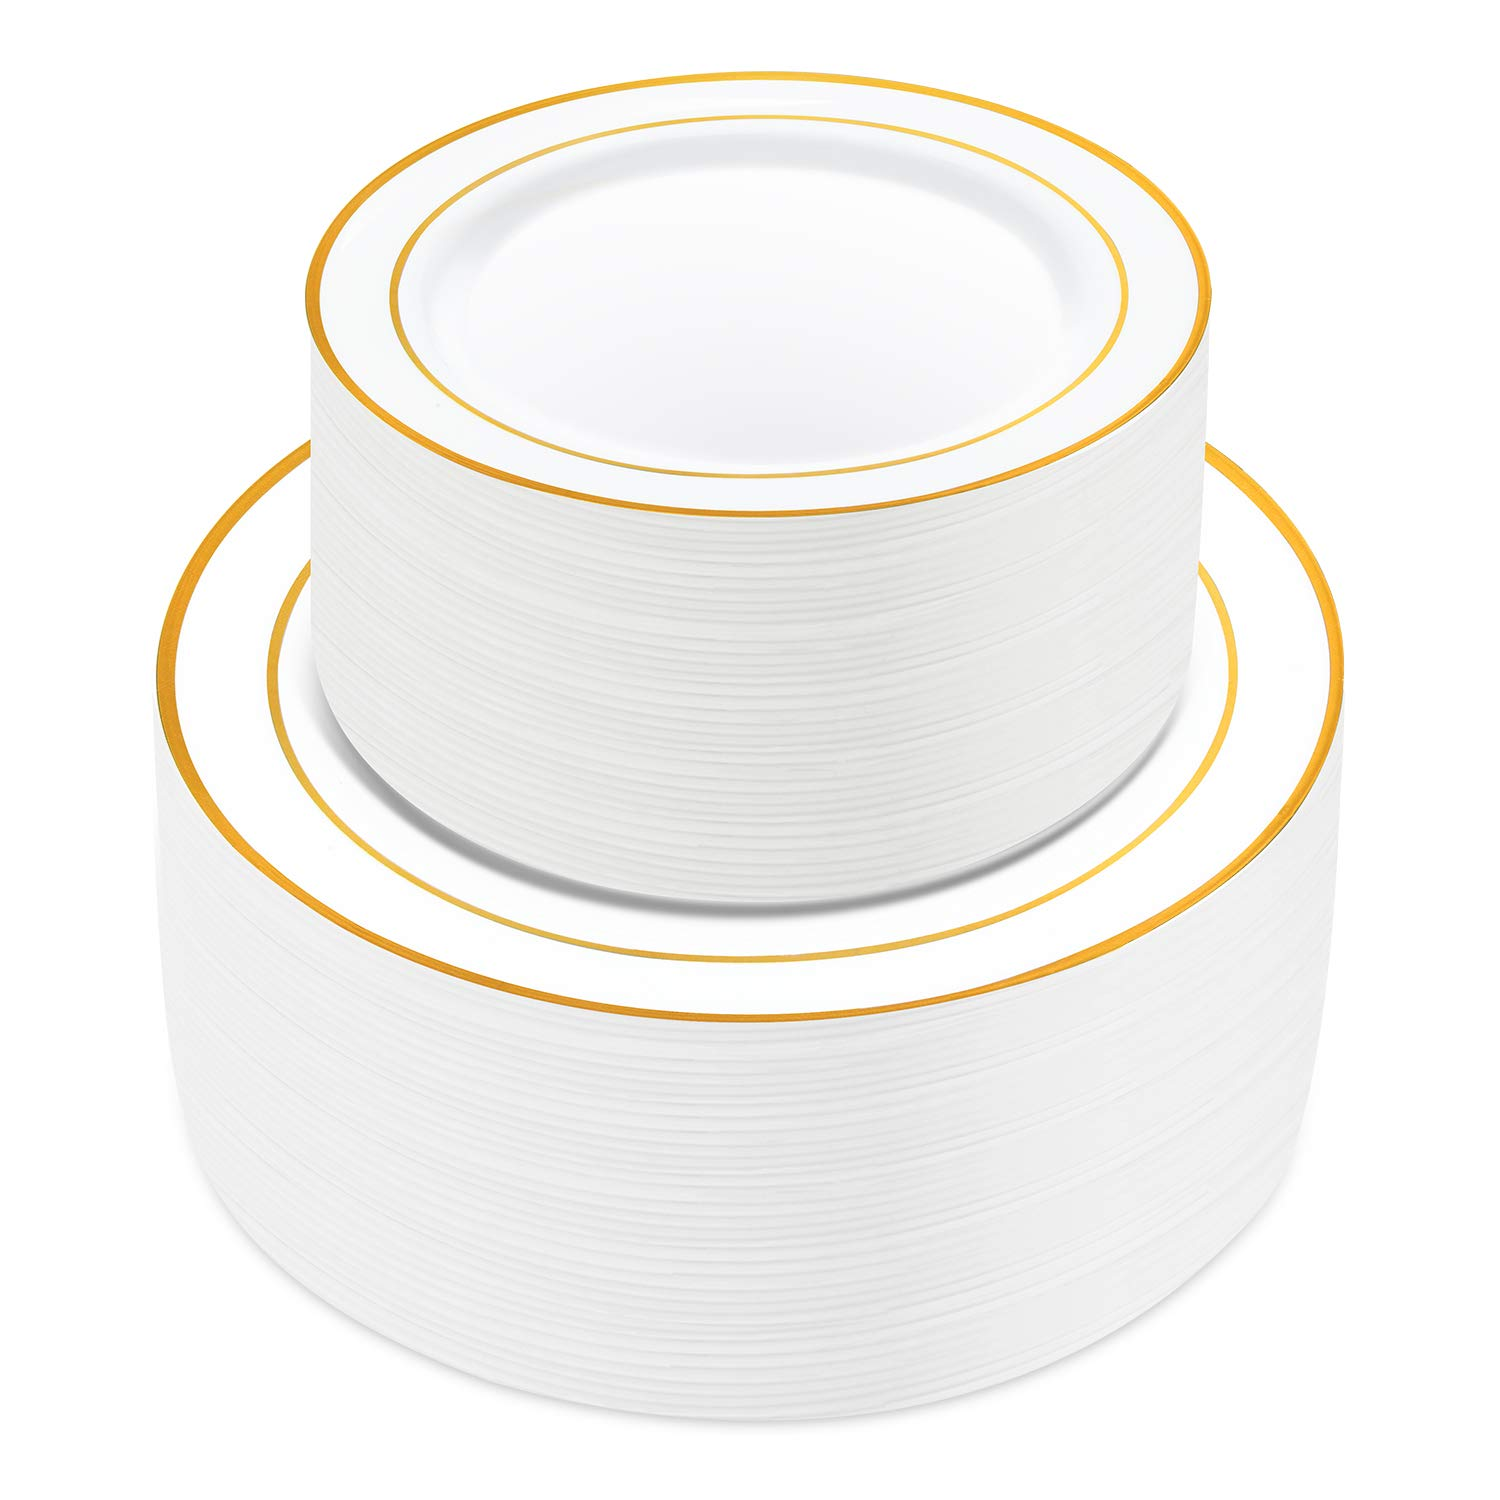 100 Pieces Gold Plastic Plates,HabiLife White Party Plates, Disposable Plastic Wedding Party Plates 50 Dinner Plates 10.2 inches and 50 Salad/Dessert Plates 7.5 inches ... by HabiLife